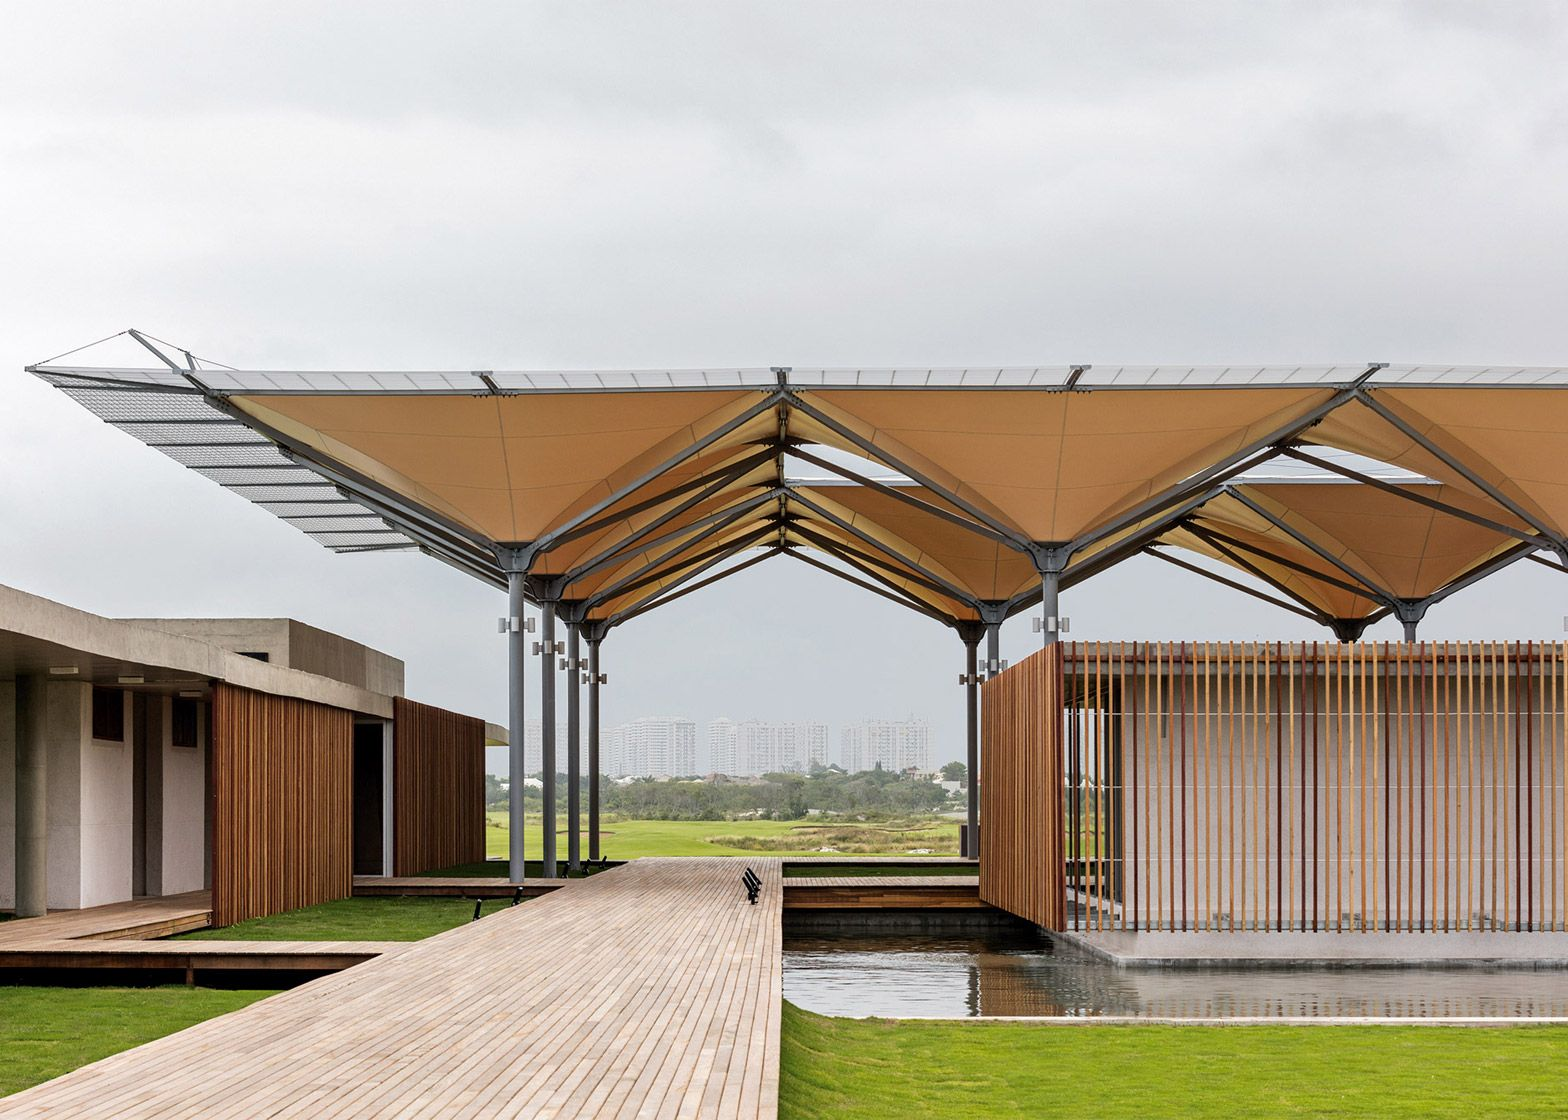 olympic golf course by rua arquitectos rio 2016 olympics and paralympics venues photographed. Black Bedroom Furniture Sets. Home Design Ideas